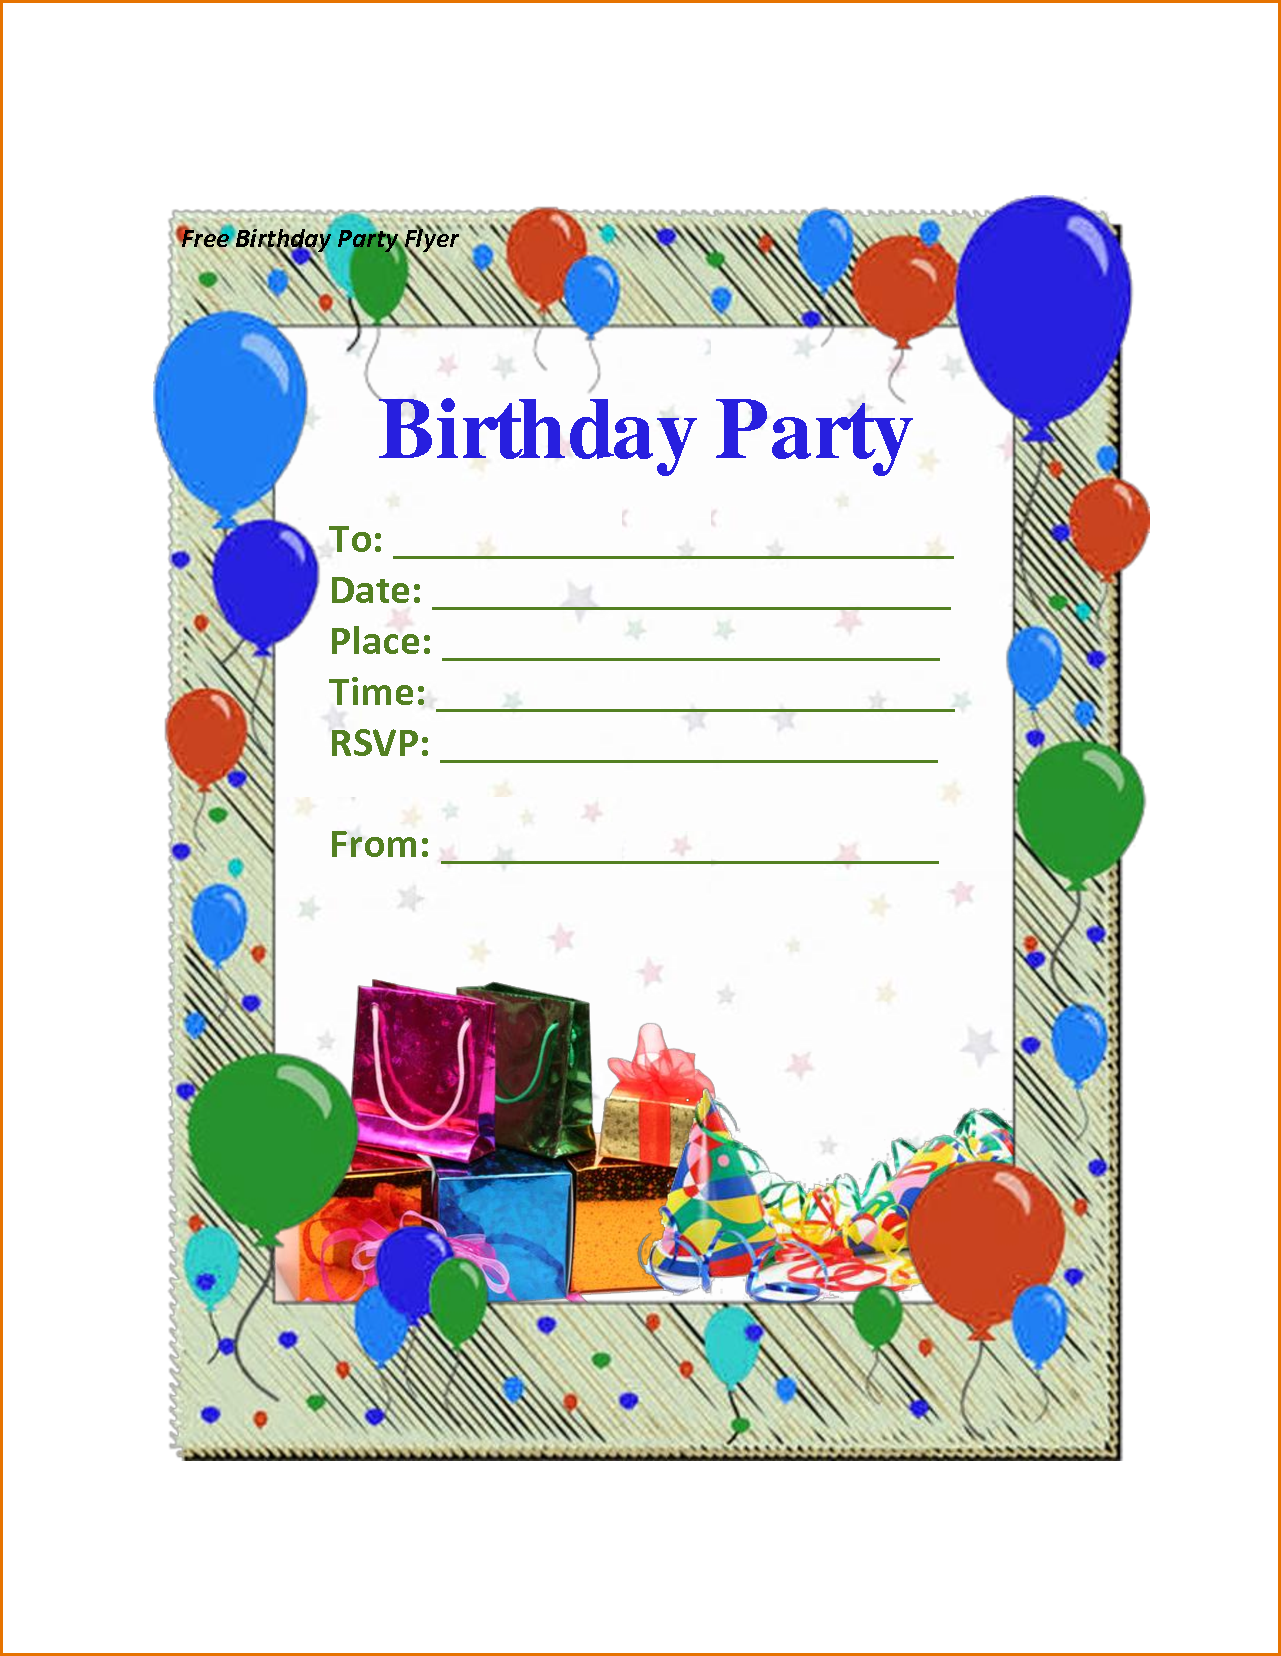 98 Free Printable Birthday Party Invitation Template In Word in Word for Birthday Party Invitation Template In Word